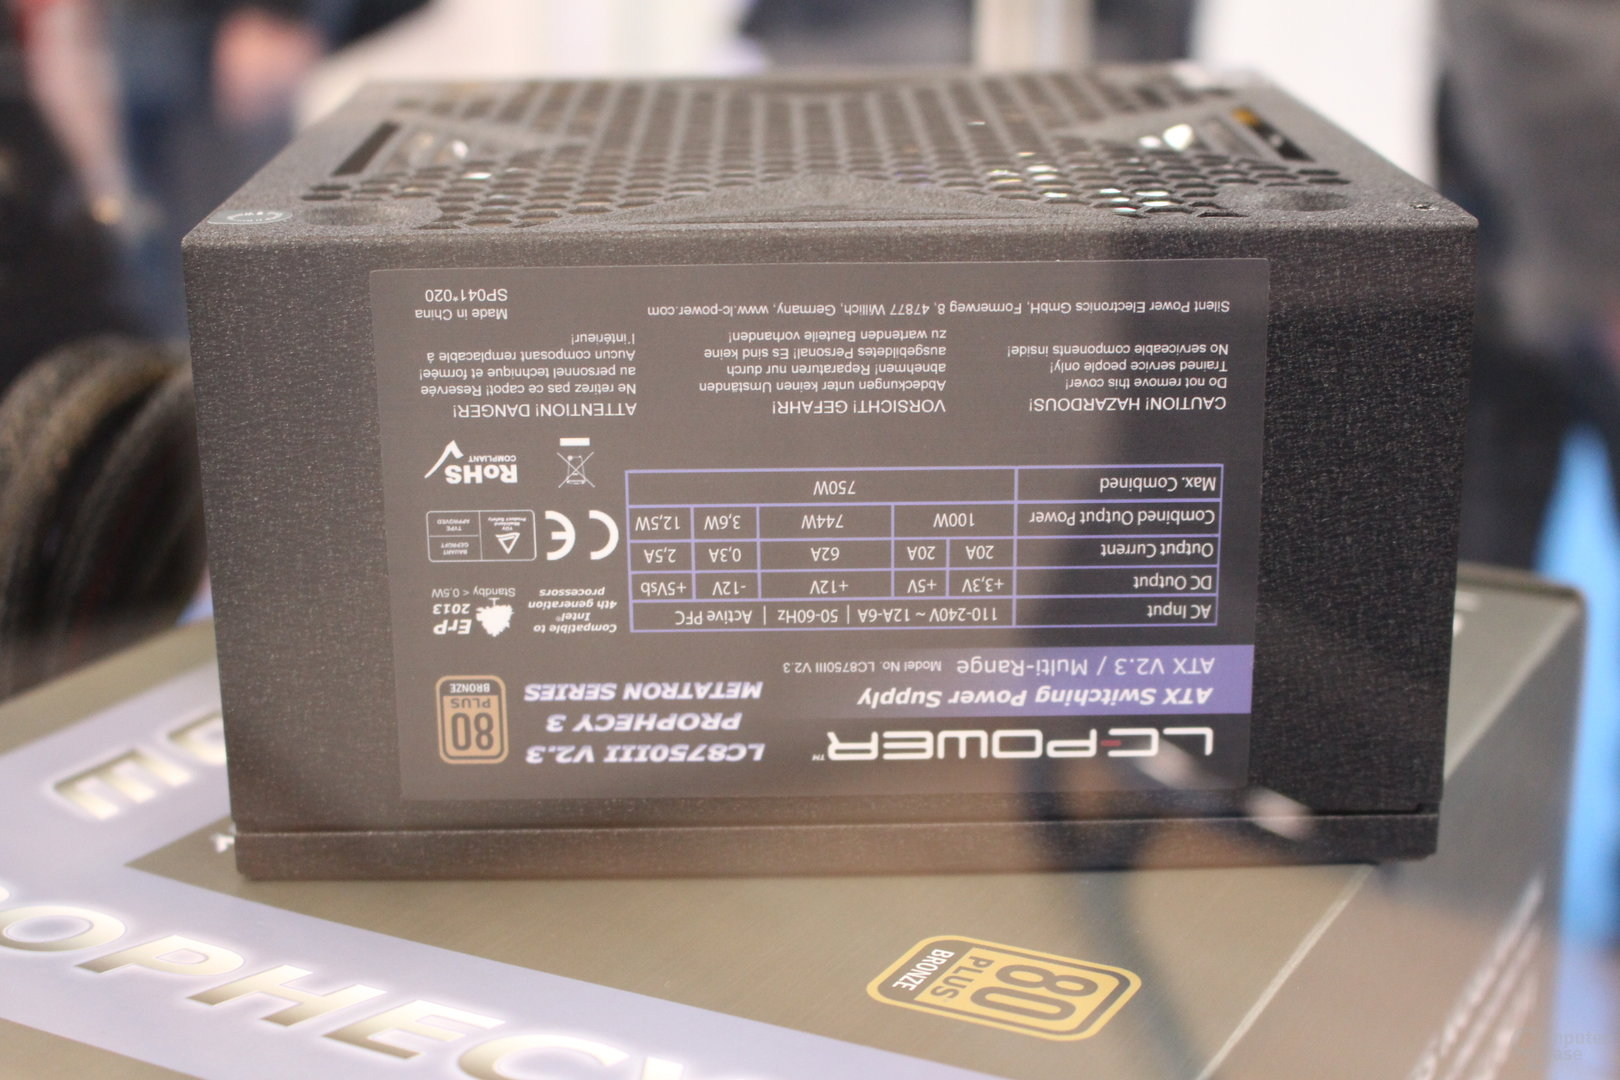 LC-Power Prophecy 3 Metatron Gaming